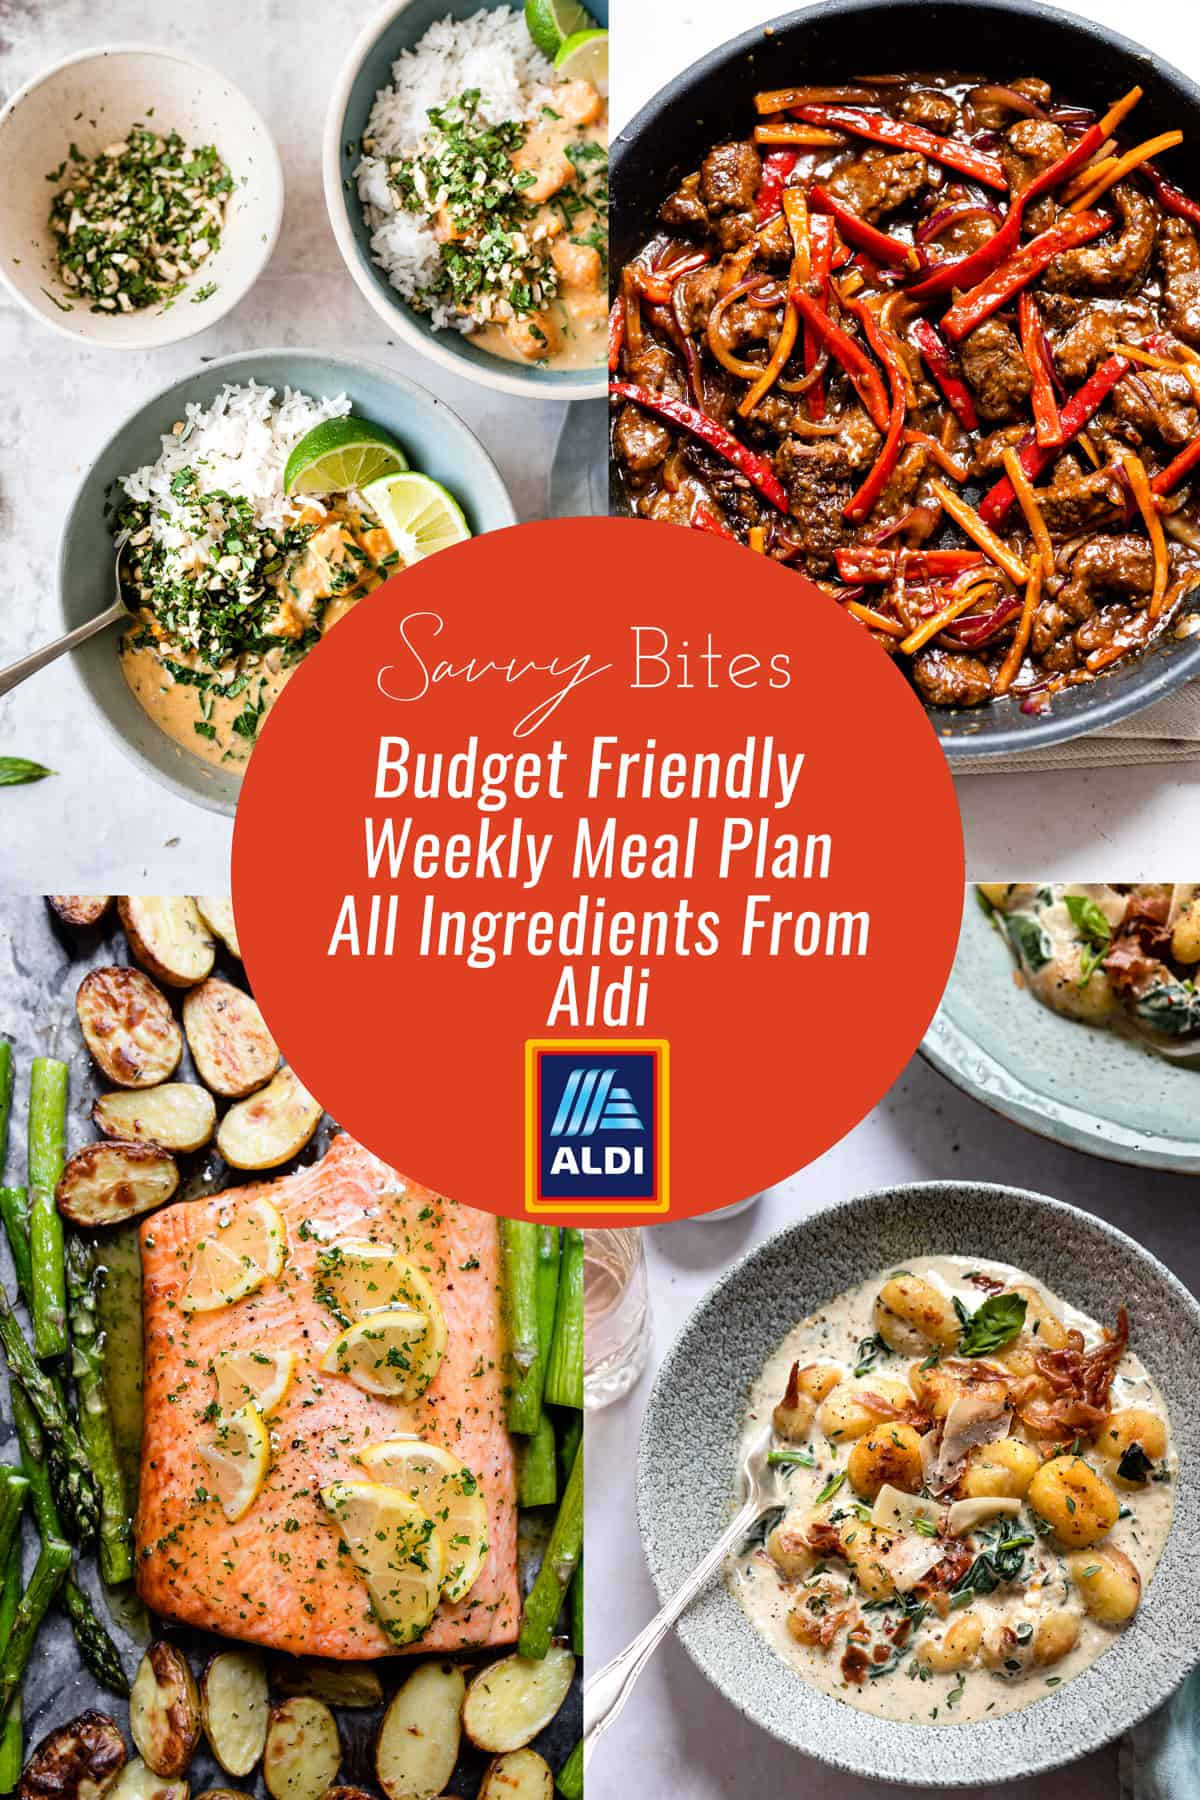 Aldi recipes budget meal plan with photo collage of recipes.